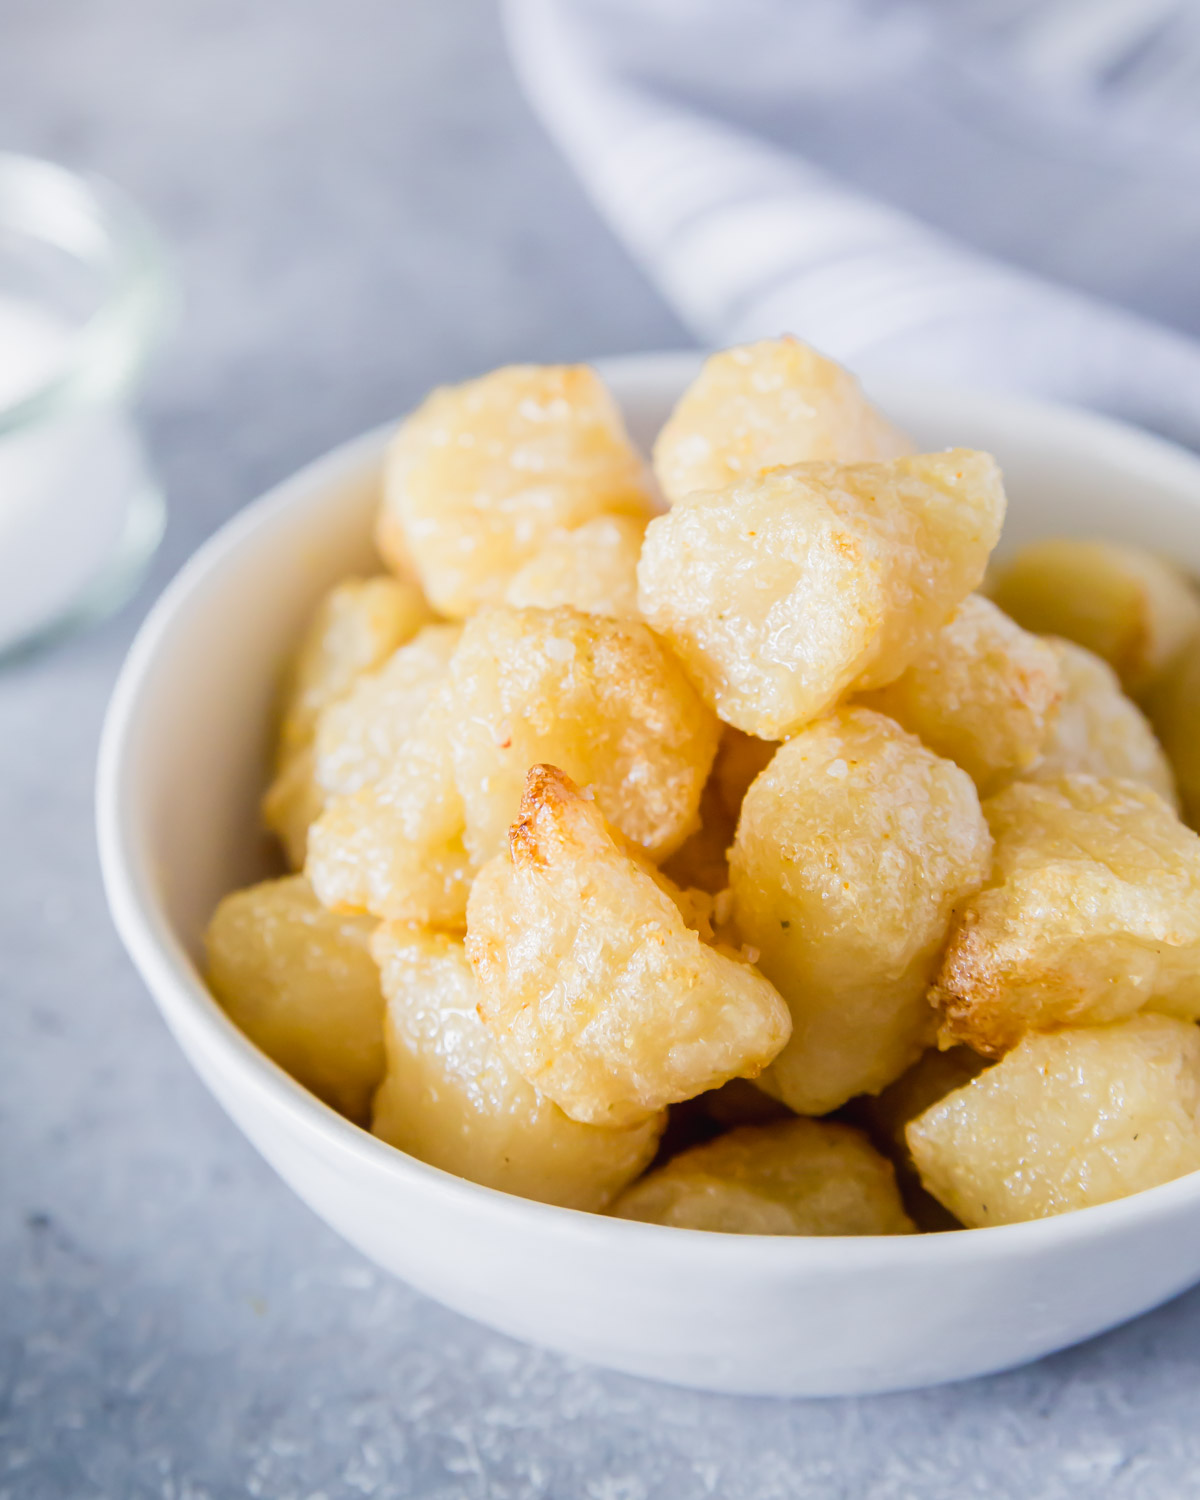 Preparing cauliflower gnocchi in the air fryer is one of the easiest methods that results in the perfect crispy texture.